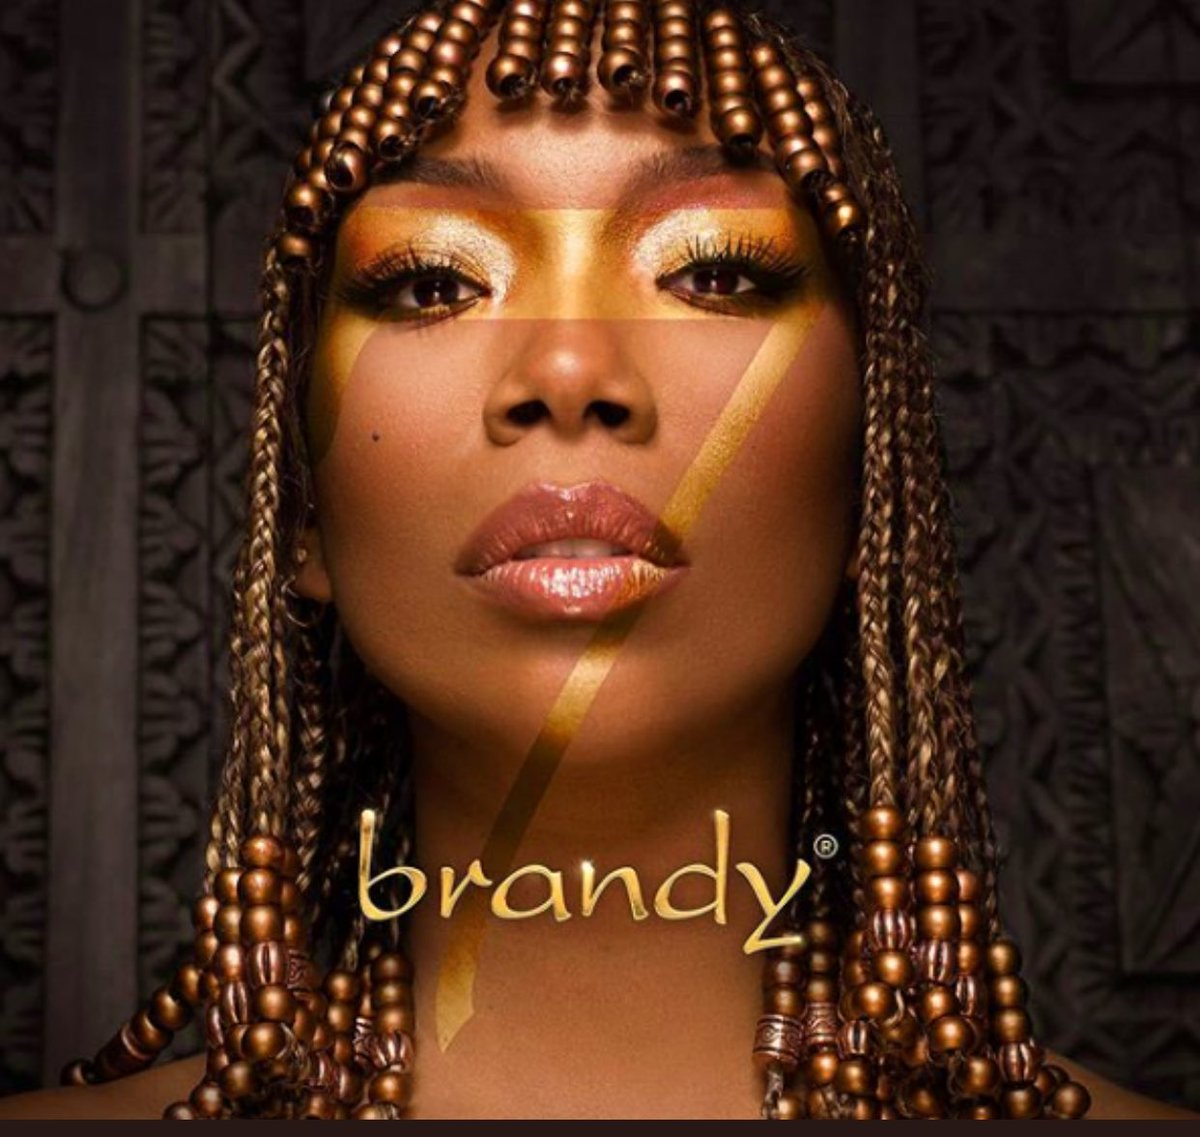 Brandy is back finally #B7 #Brandy a legend and gift from God ❤️❤️💜💜💙💙🖤🖤